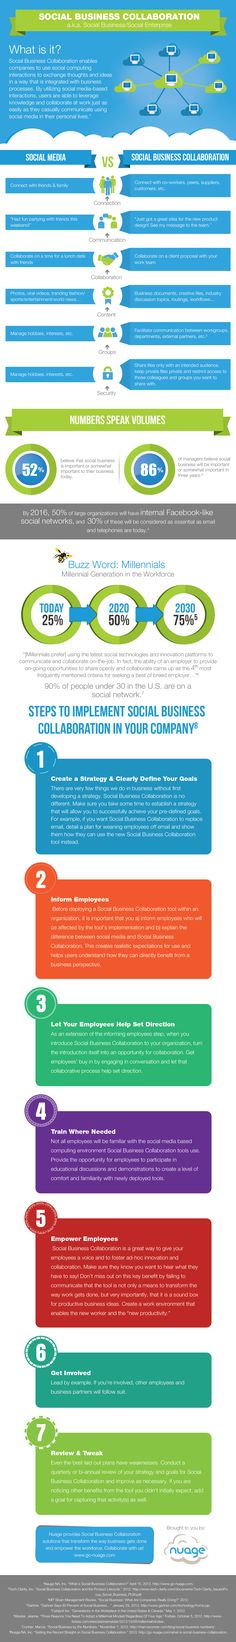 86% of managers say social business will be important in 2015 -  setting-the-record-straight-on-social-business-collaboration. #Socbiz #Social #Infographic